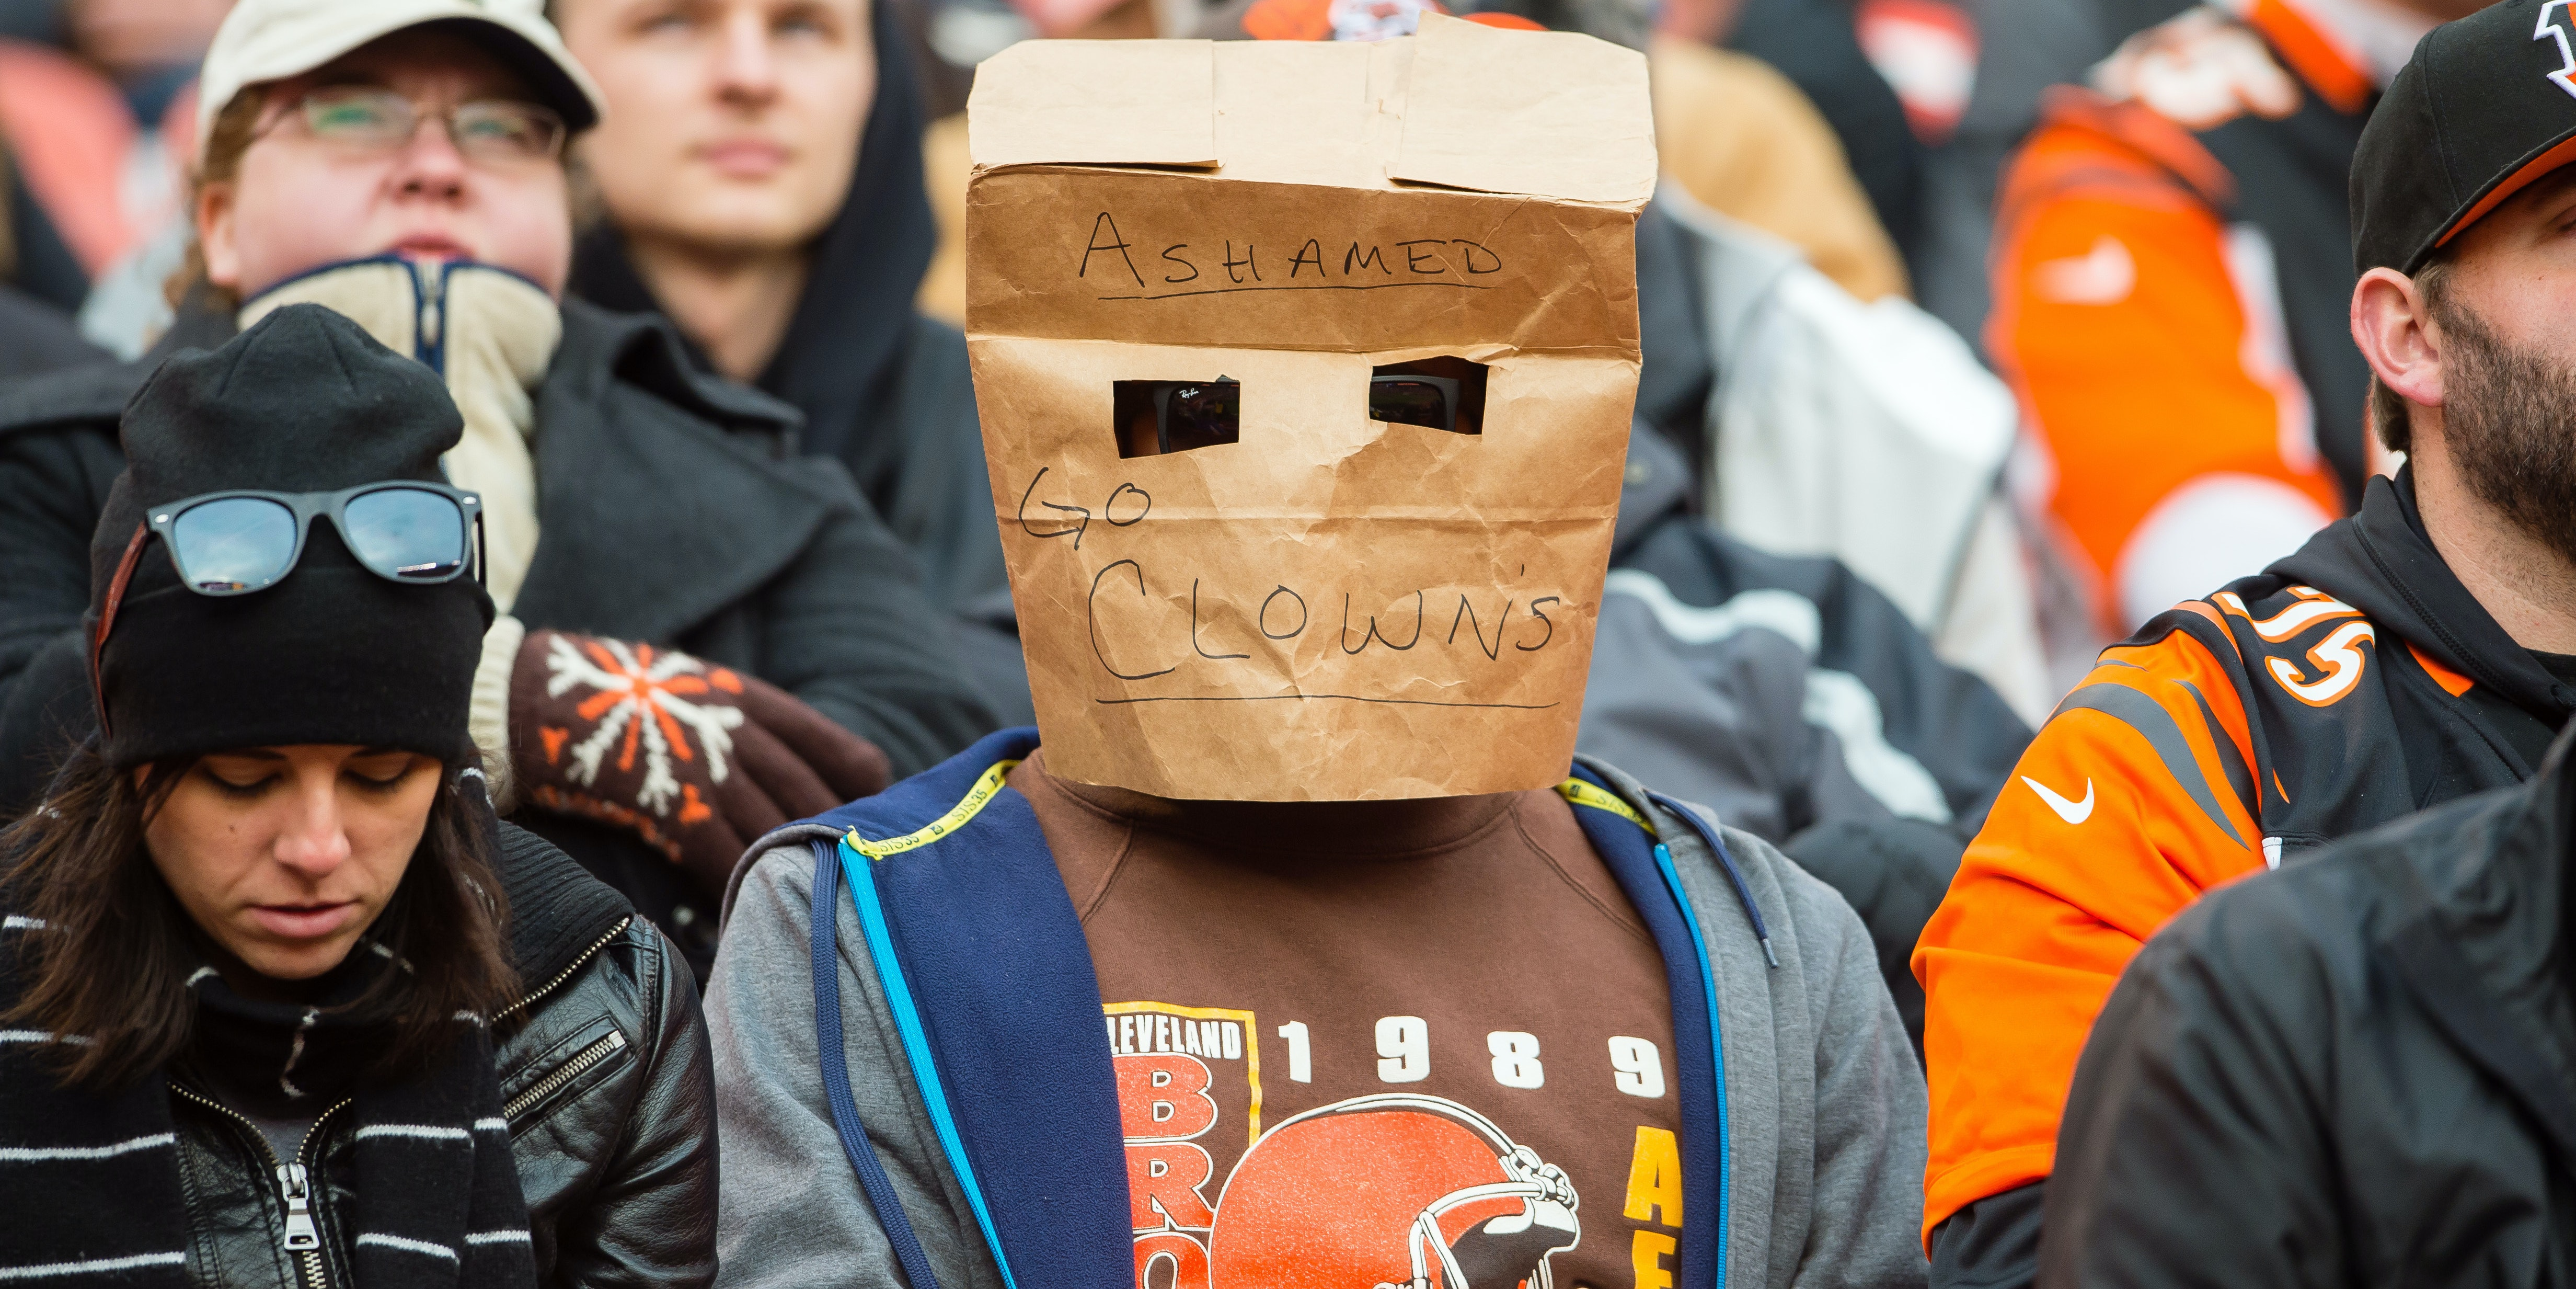 CLEVELAND, OH - DECEMBER 6: A Cleveland Browns fan expresses their disappointment with the team during the second half against the Cincinnati Bengals at FirstEnergy Stadium on December 6, 2015 in Cleveland, Ohio. The Bengals defeated the Browns 37-3. (Photo by Jason Miller/Getty Images)